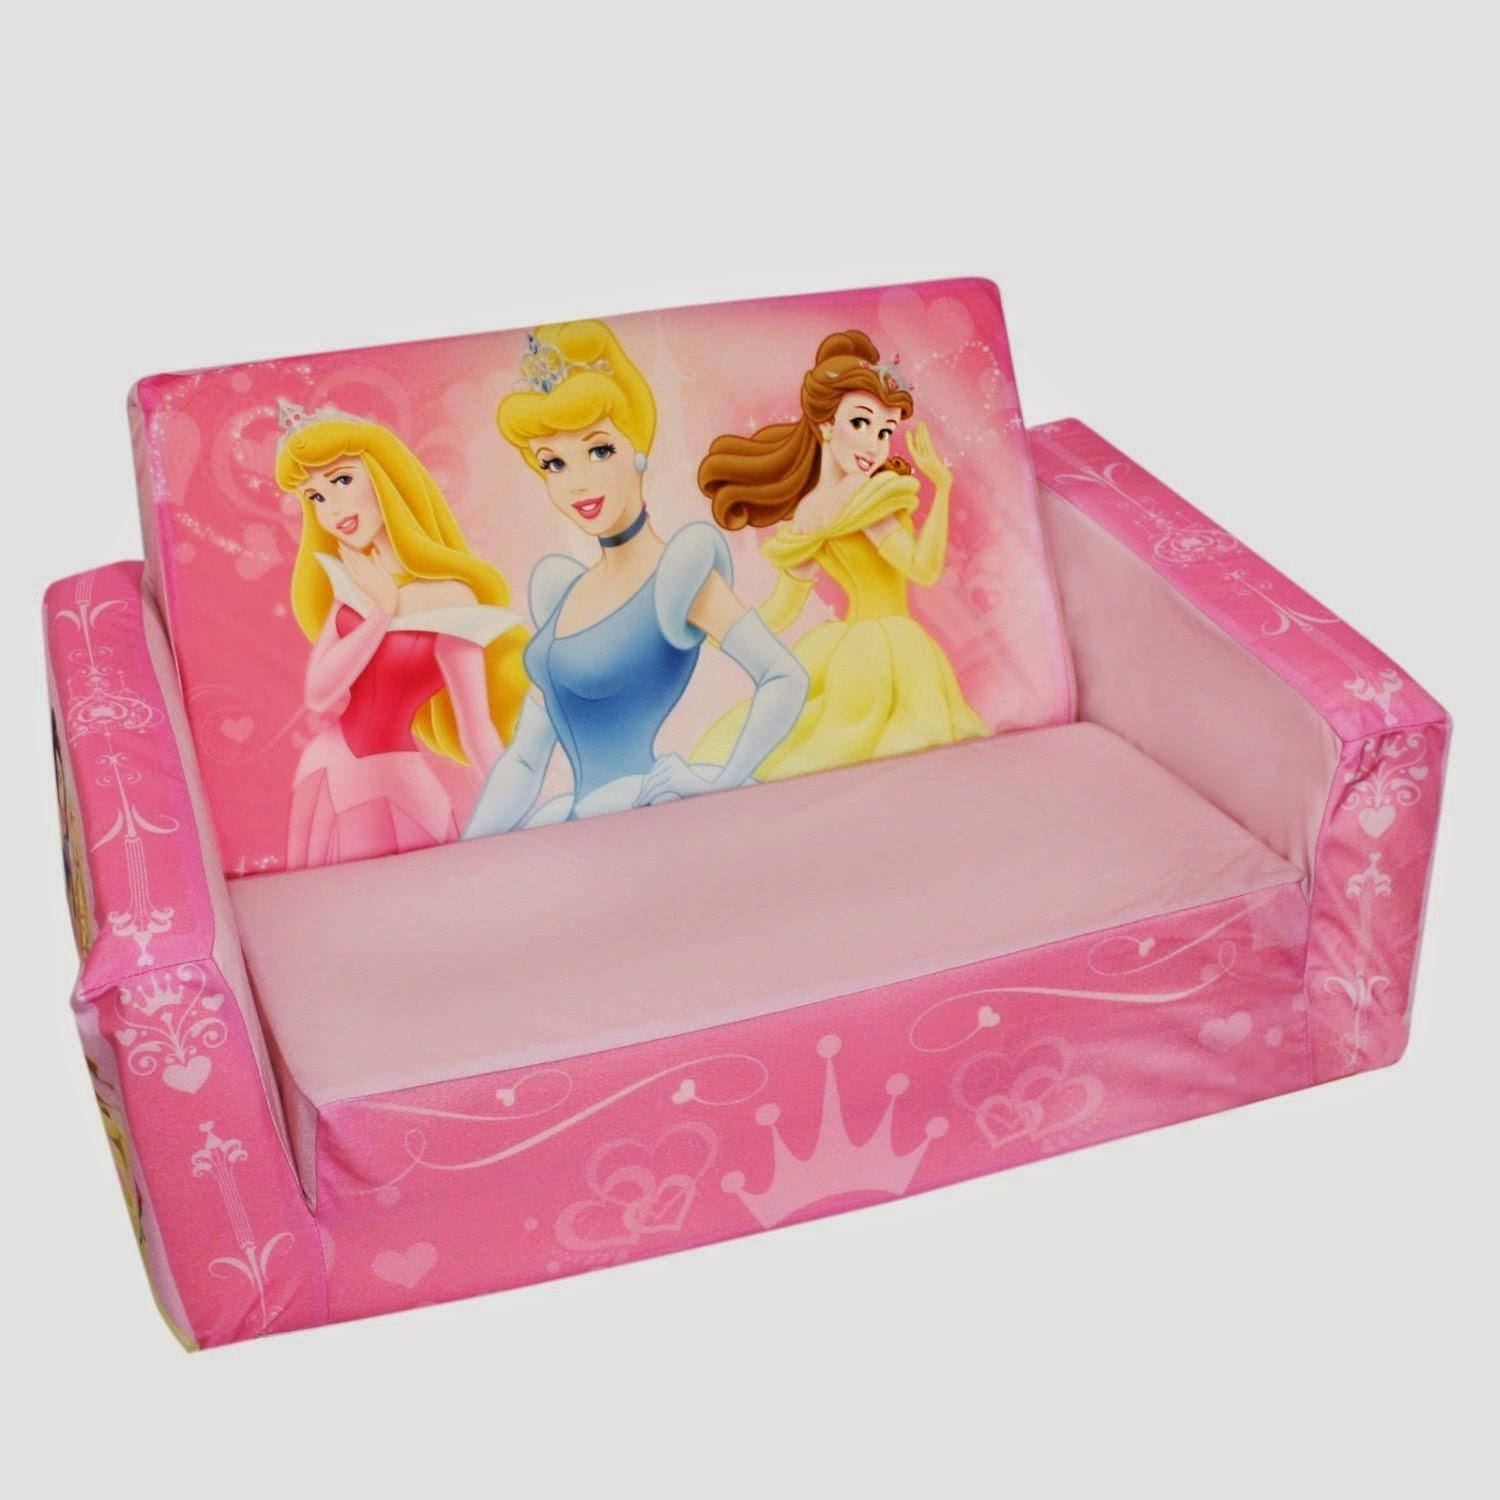 Fold Out Couch Intended For Disney Sofas (Image 4 of 20)